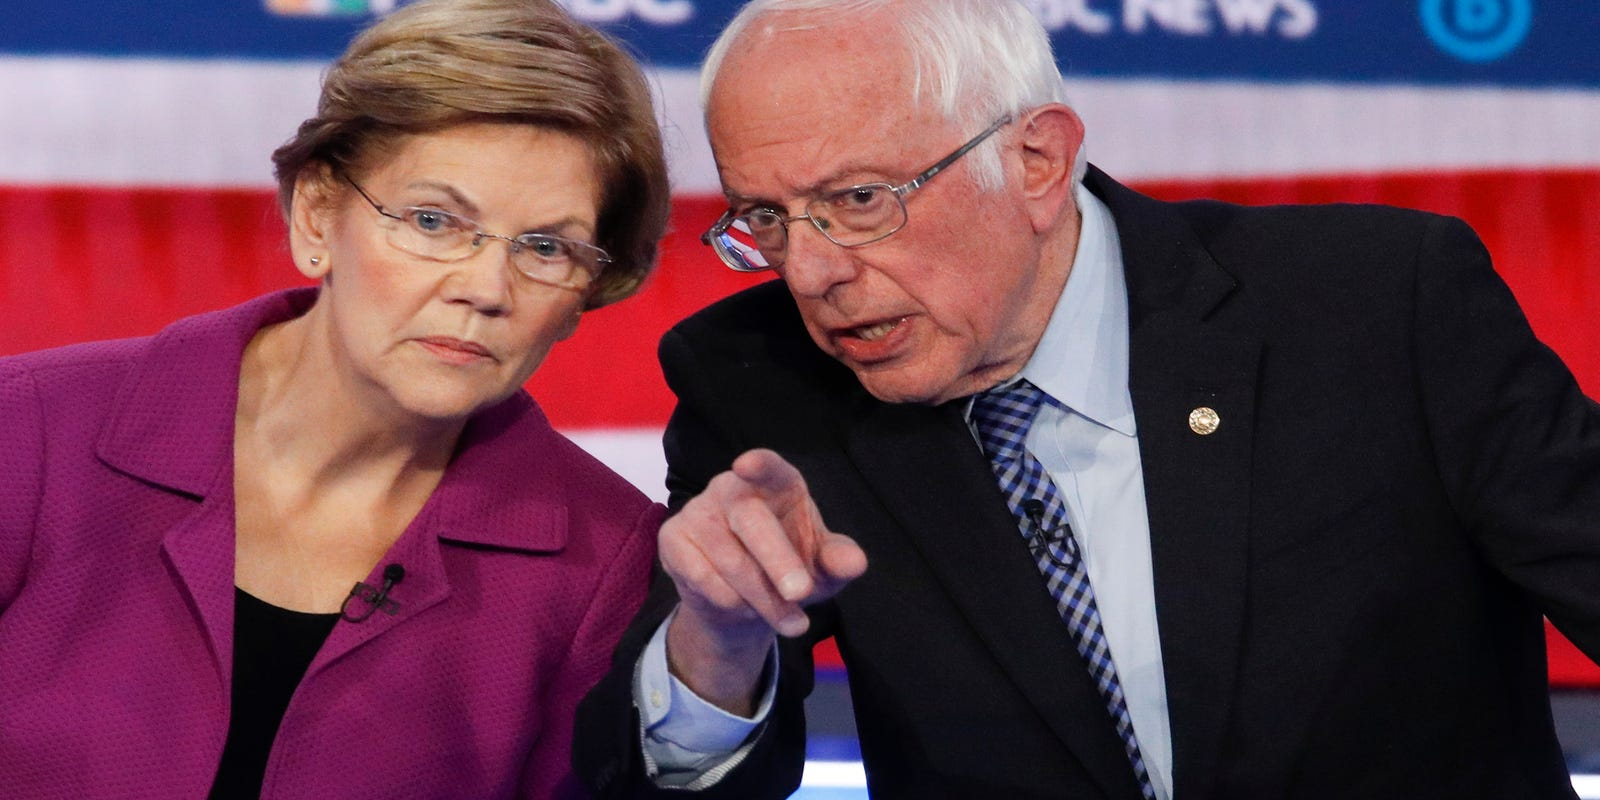 Poll: Elizabeth Warren neck-and-neck with Sanders in Massachusetts